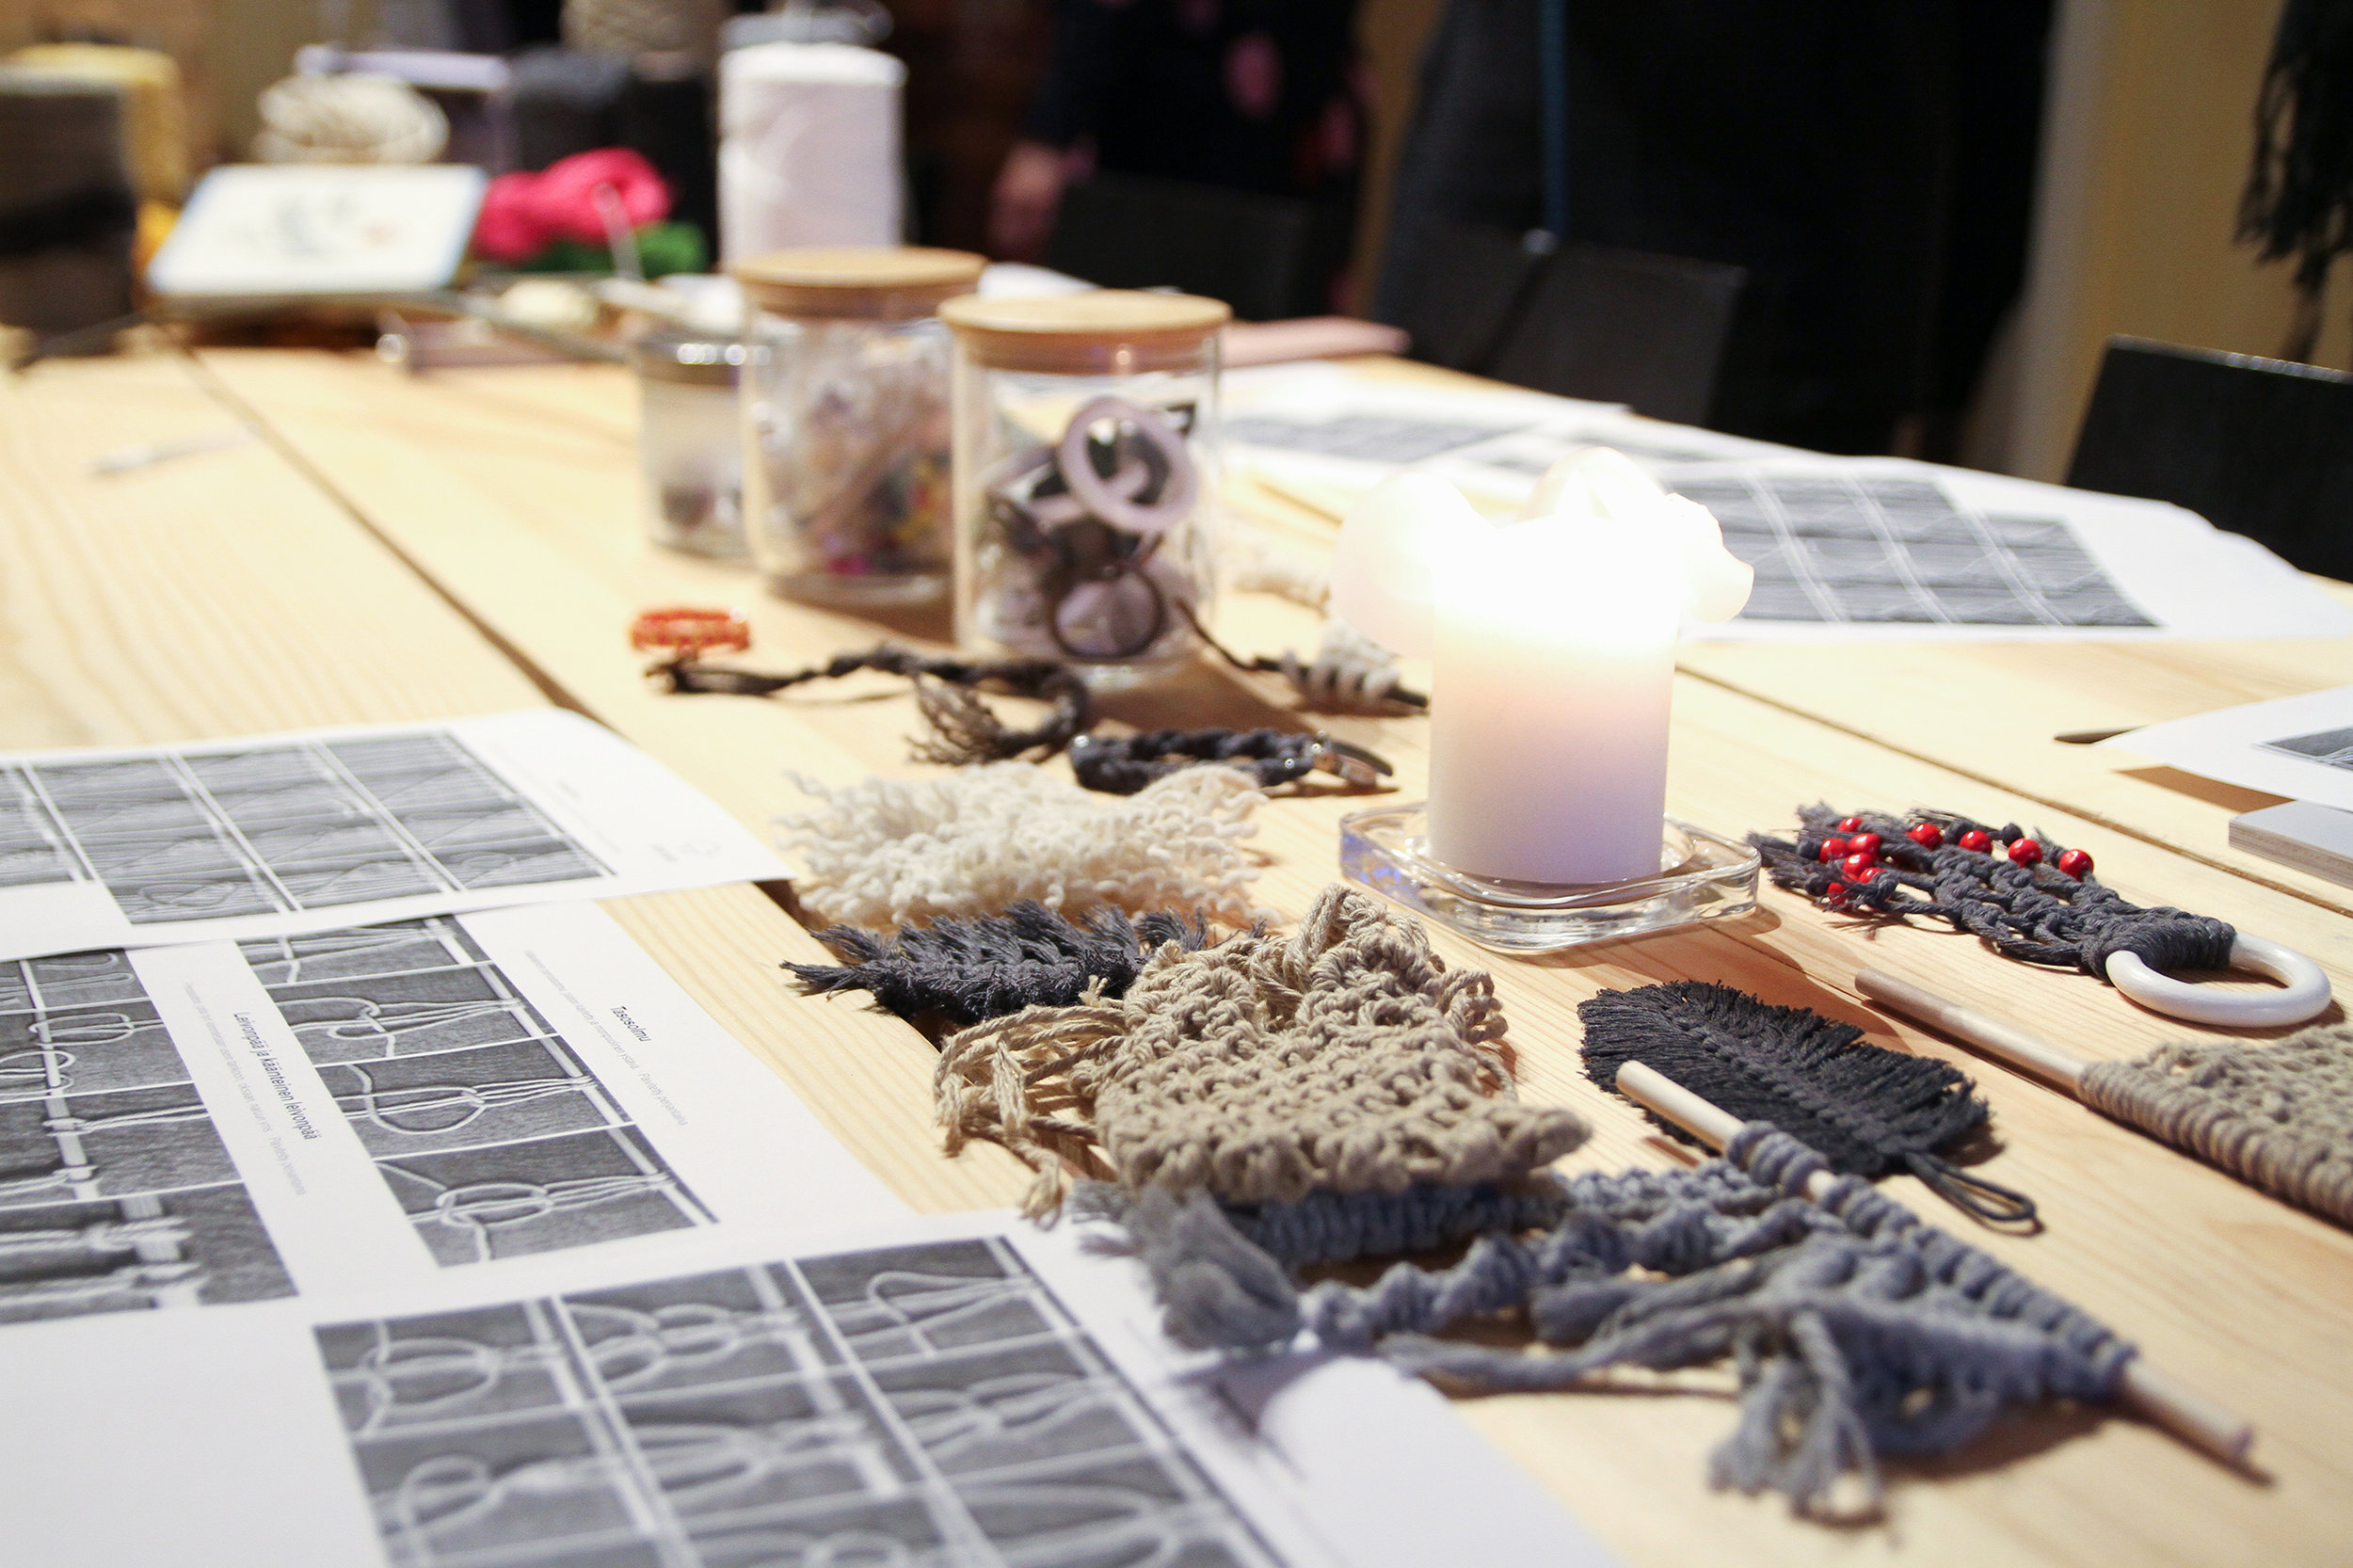 Macrame projects. Photo: Anni Laitinen.